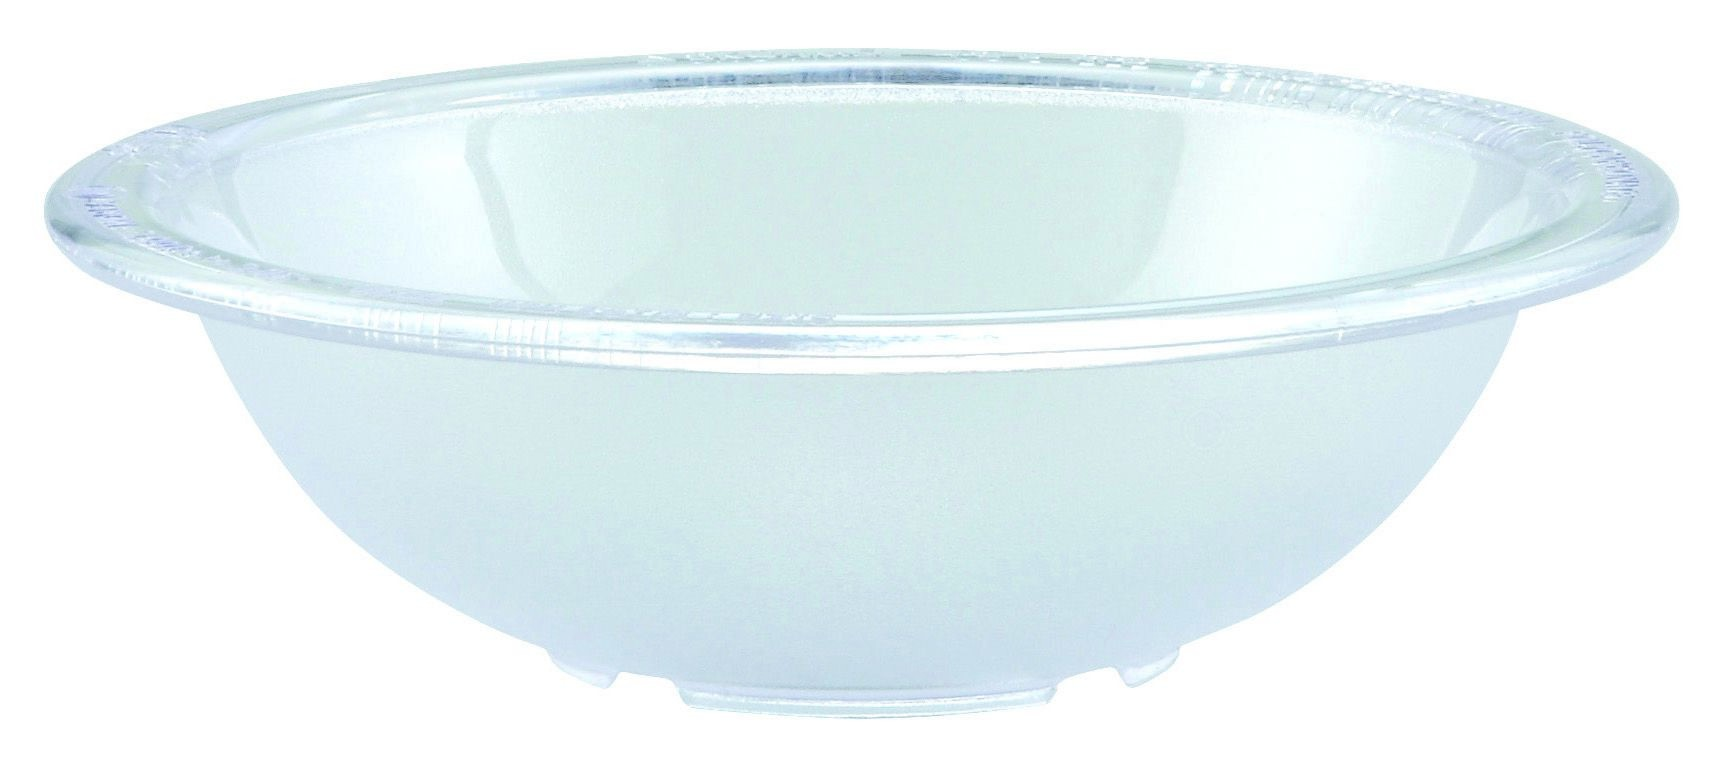 Polycarbonate Pebbled Serving Bowl - 8-7/10